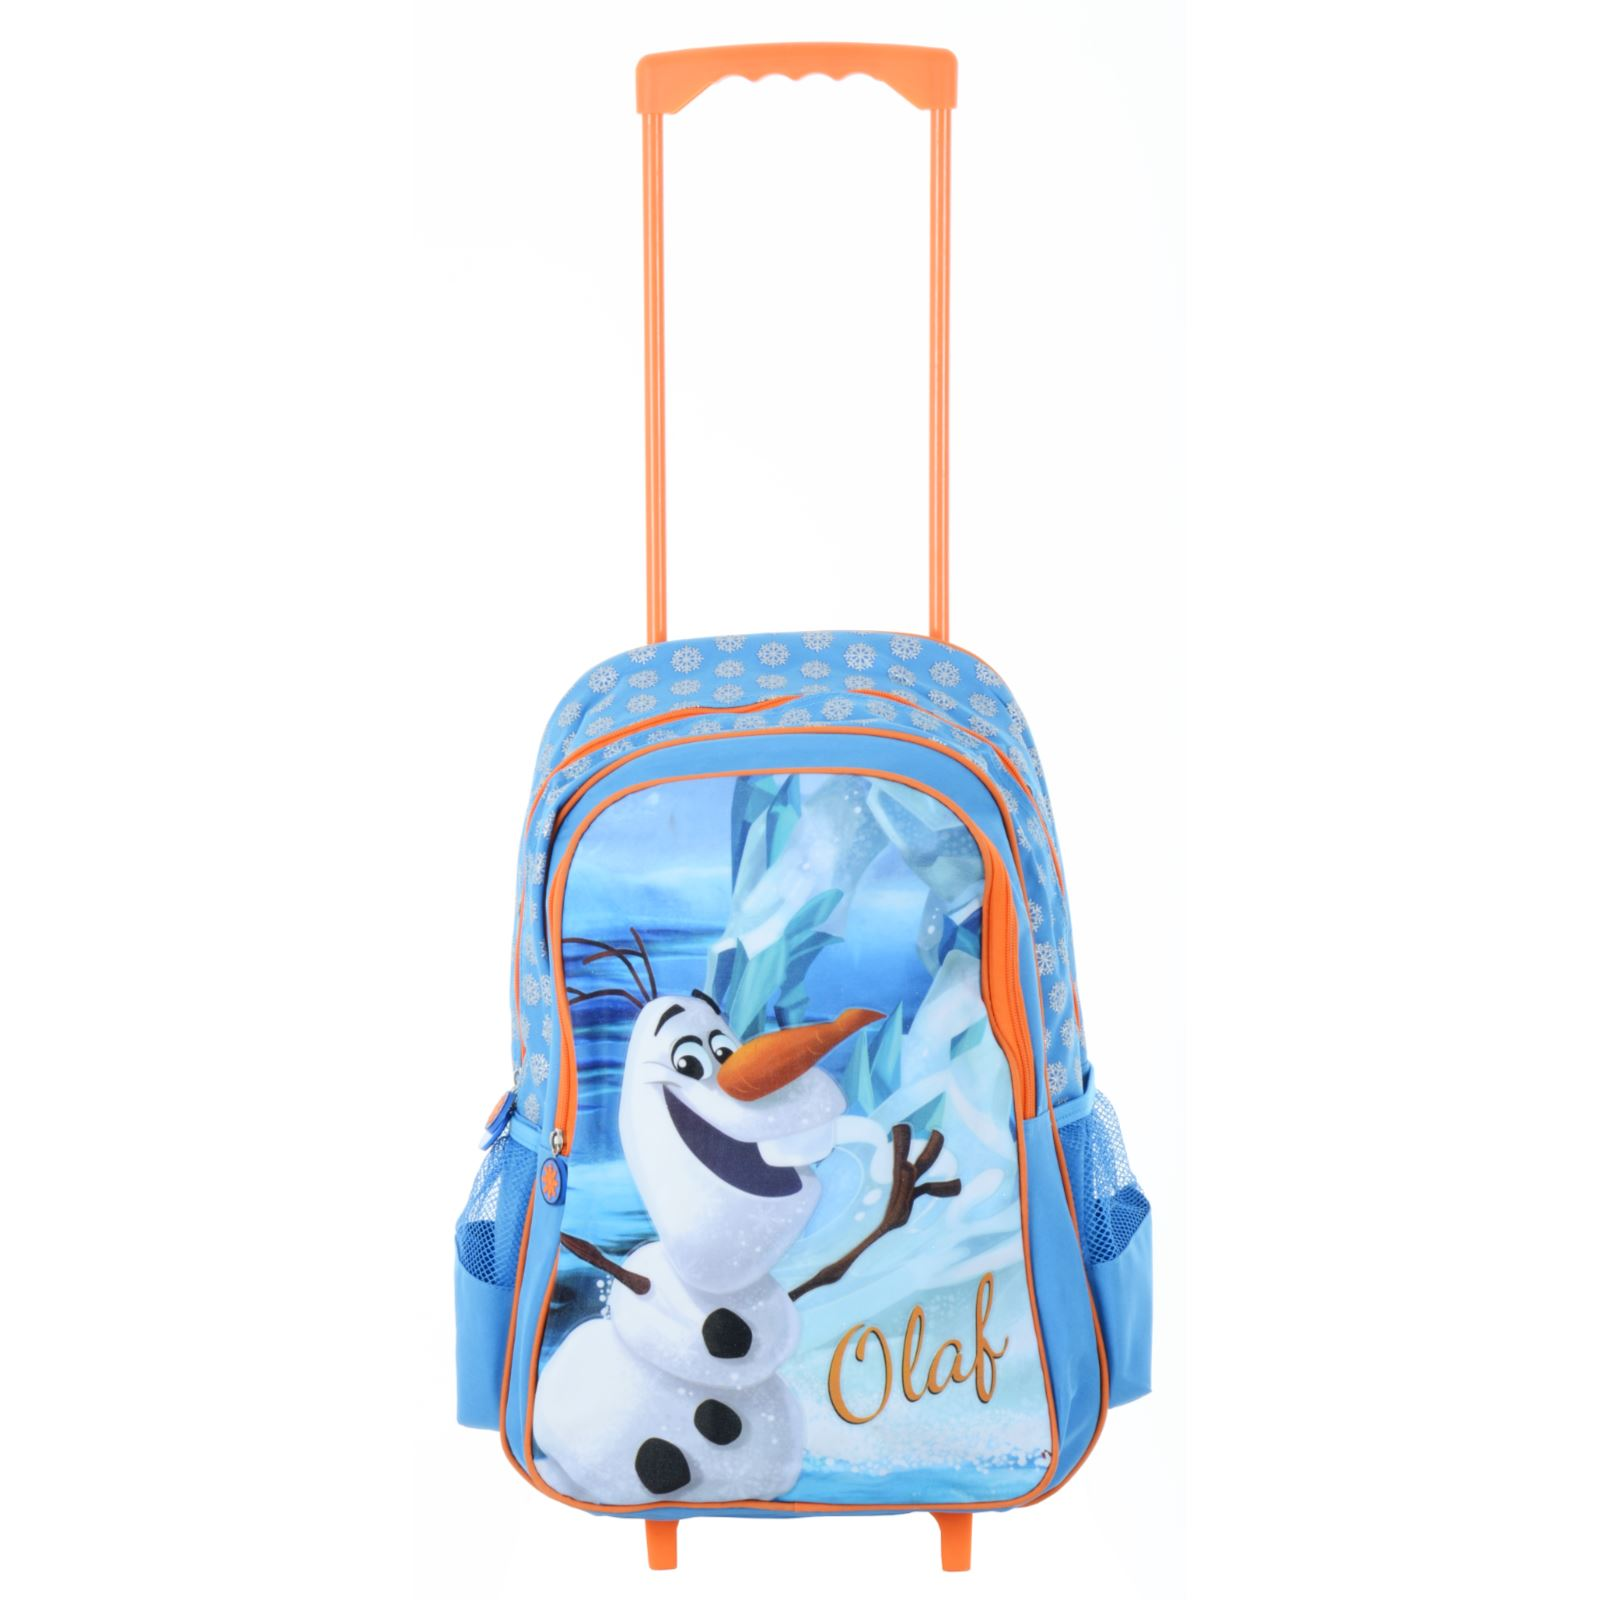 5e1ca2a02 Disney Frozen Olaf Trolley Bag Childs Travel Cabin Luggage Handle ...